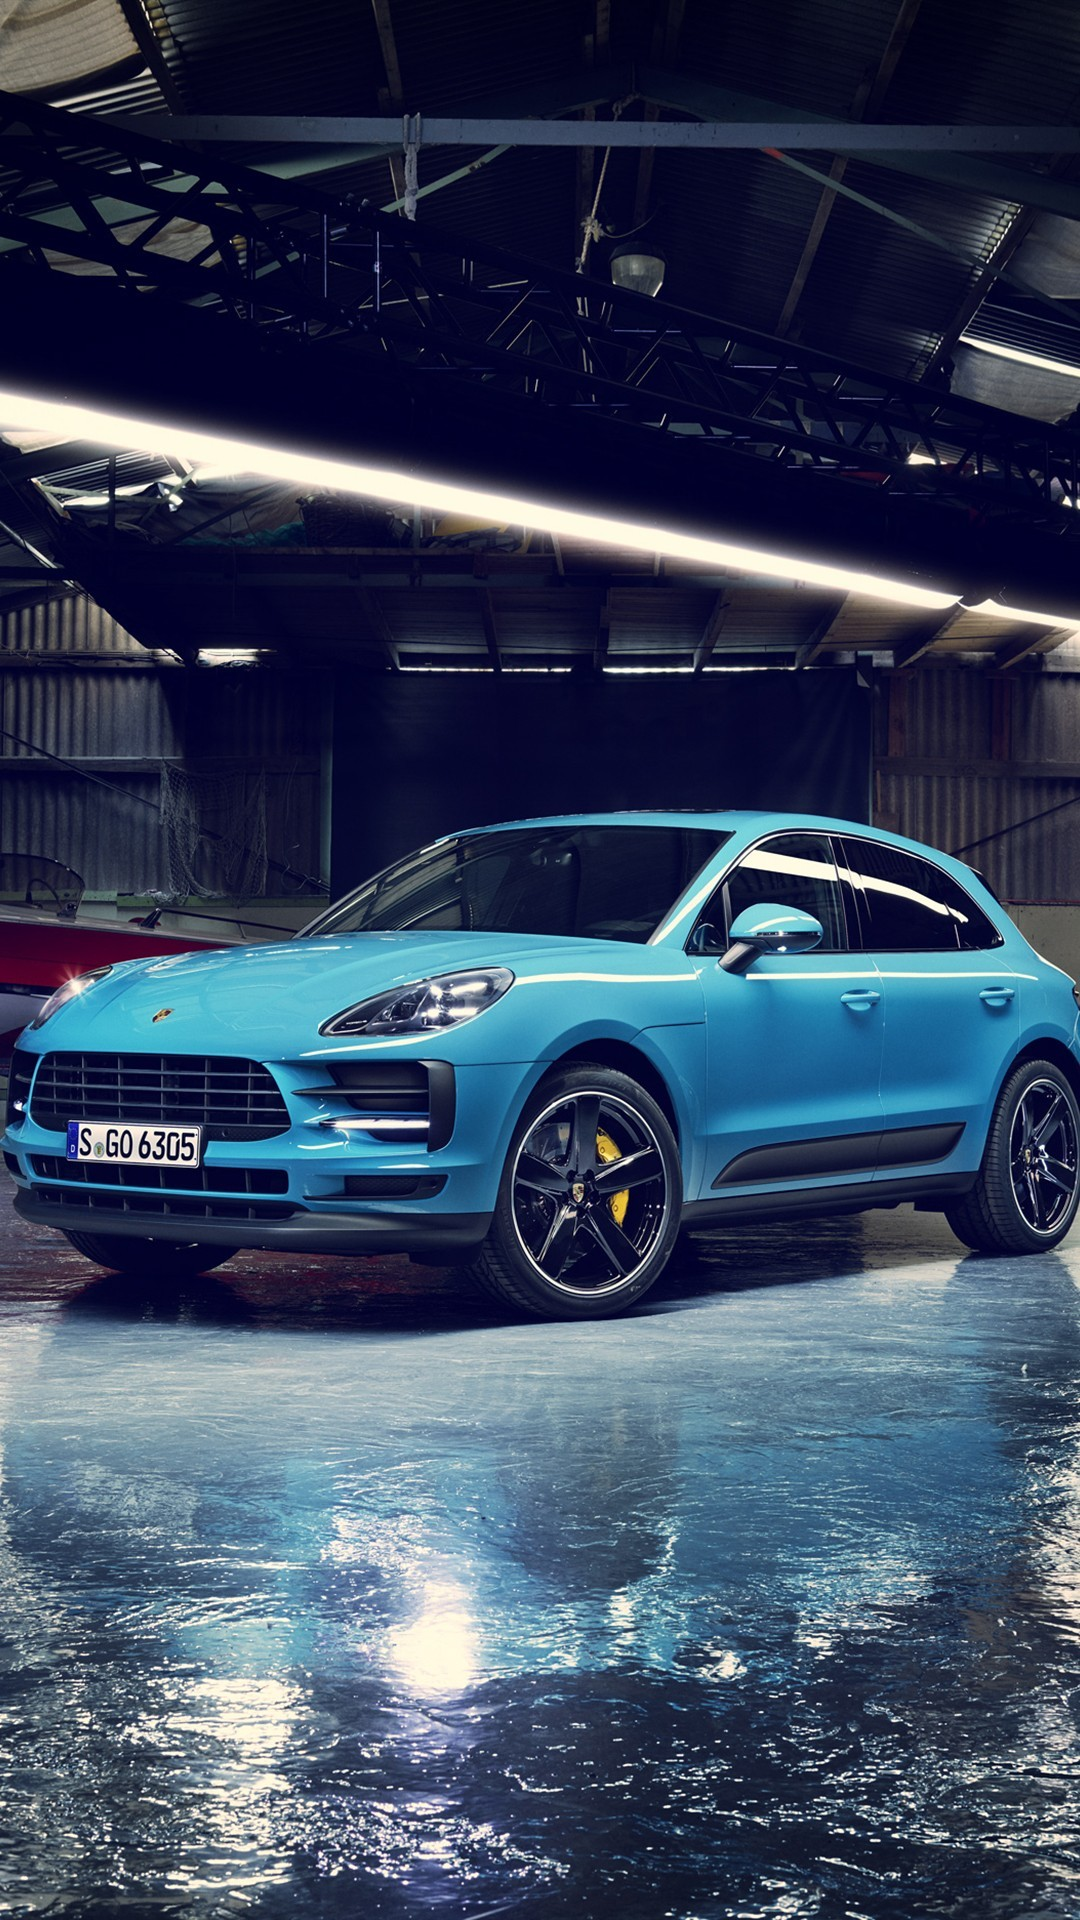 Free Porsche Macan phone wallpaper by niccthebestest